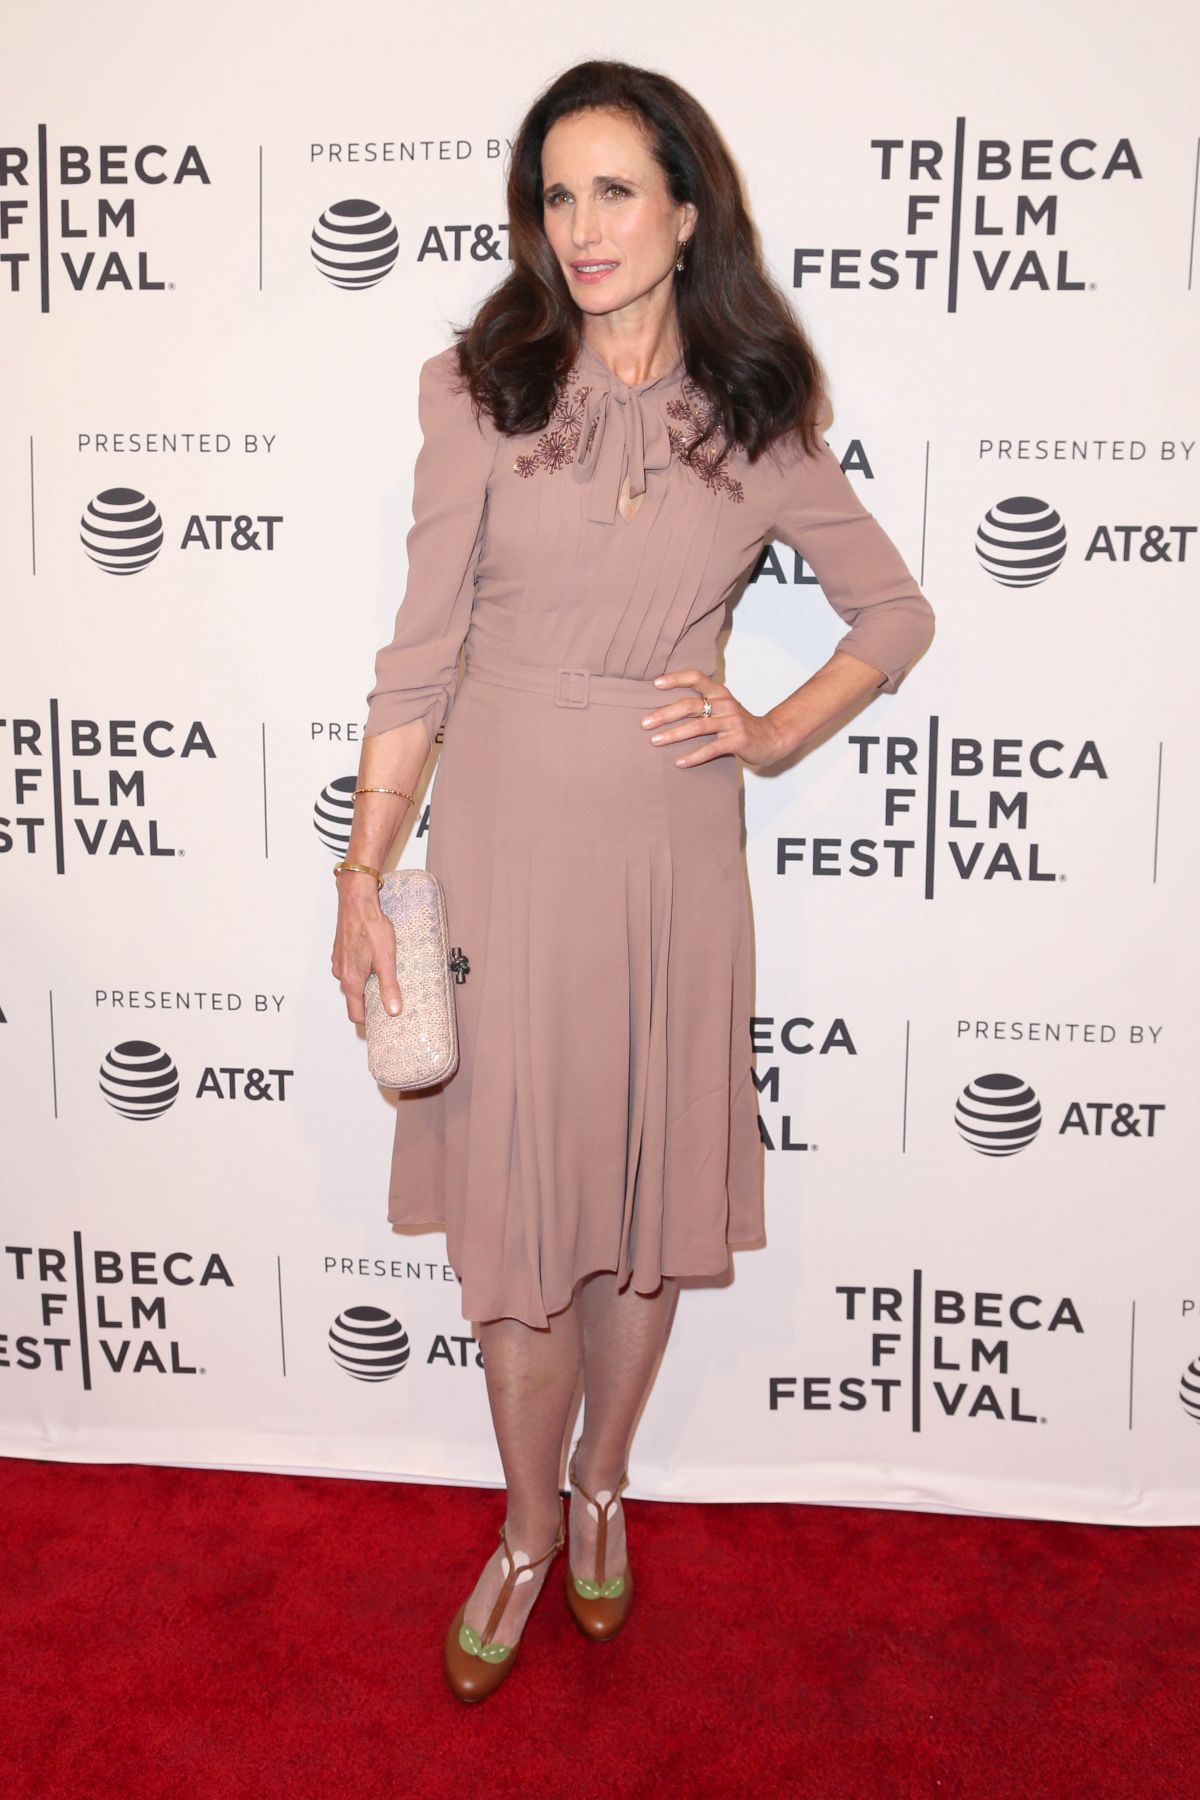 ANDIE MACDOWELL at Love After Love Screening at 2017 Tribeca Film Festival in New York 04/22/2017